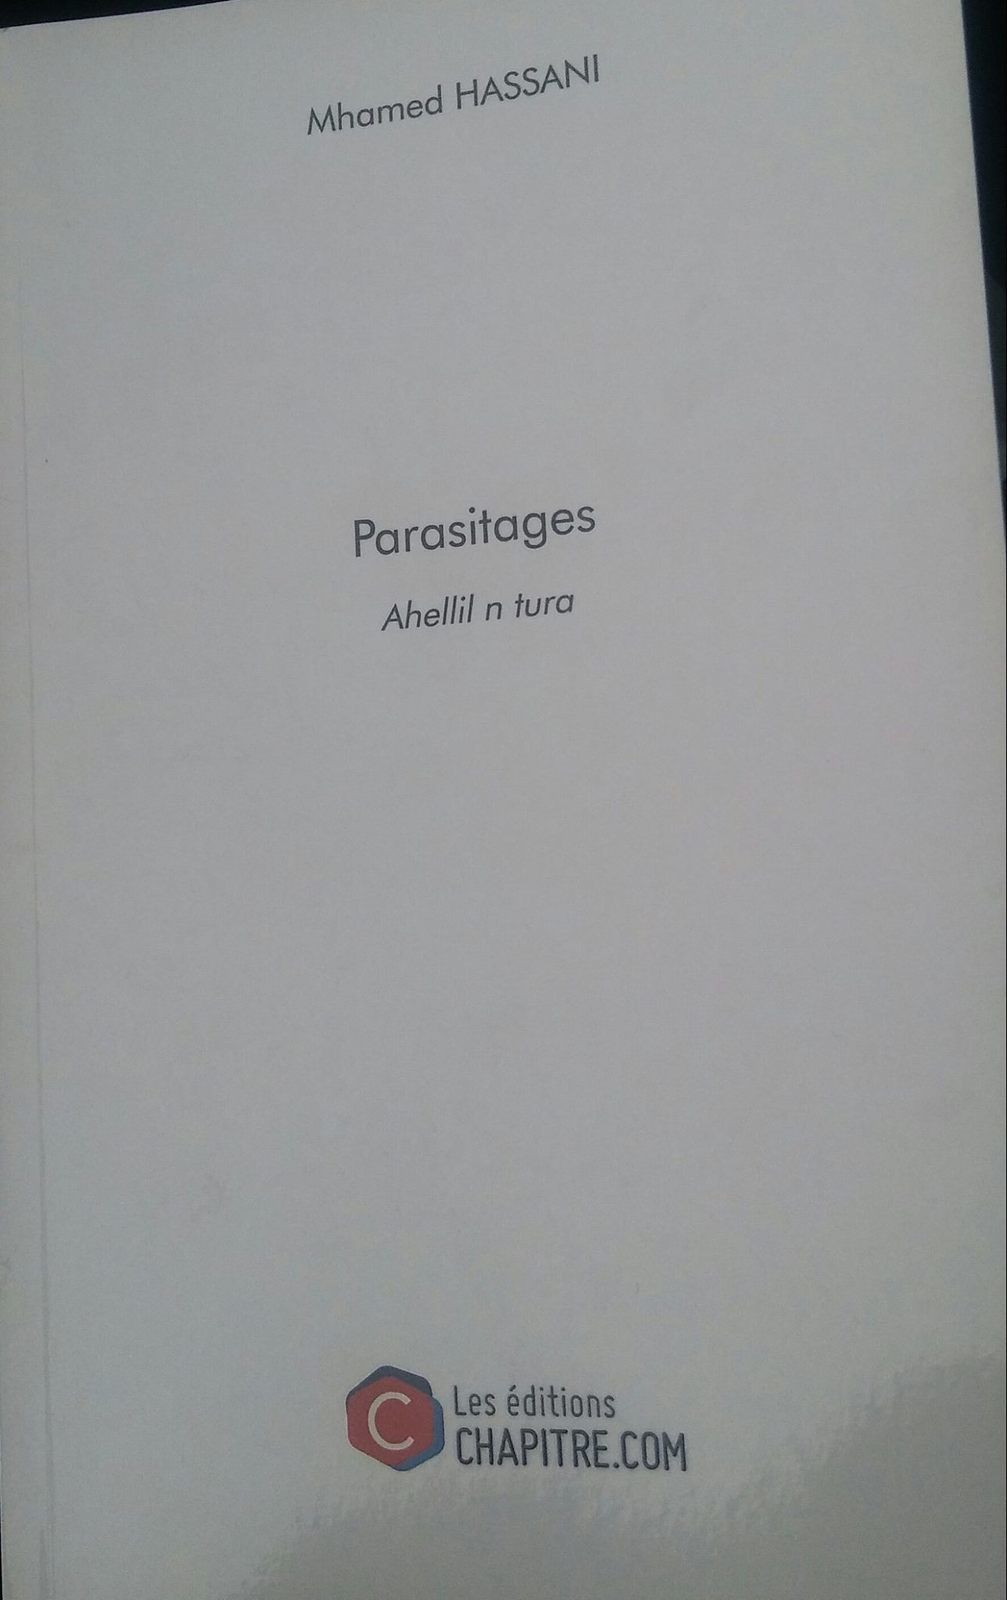 « Parasitages » Mhamed Hassani. Editions Chapitre.com 2016  - DR